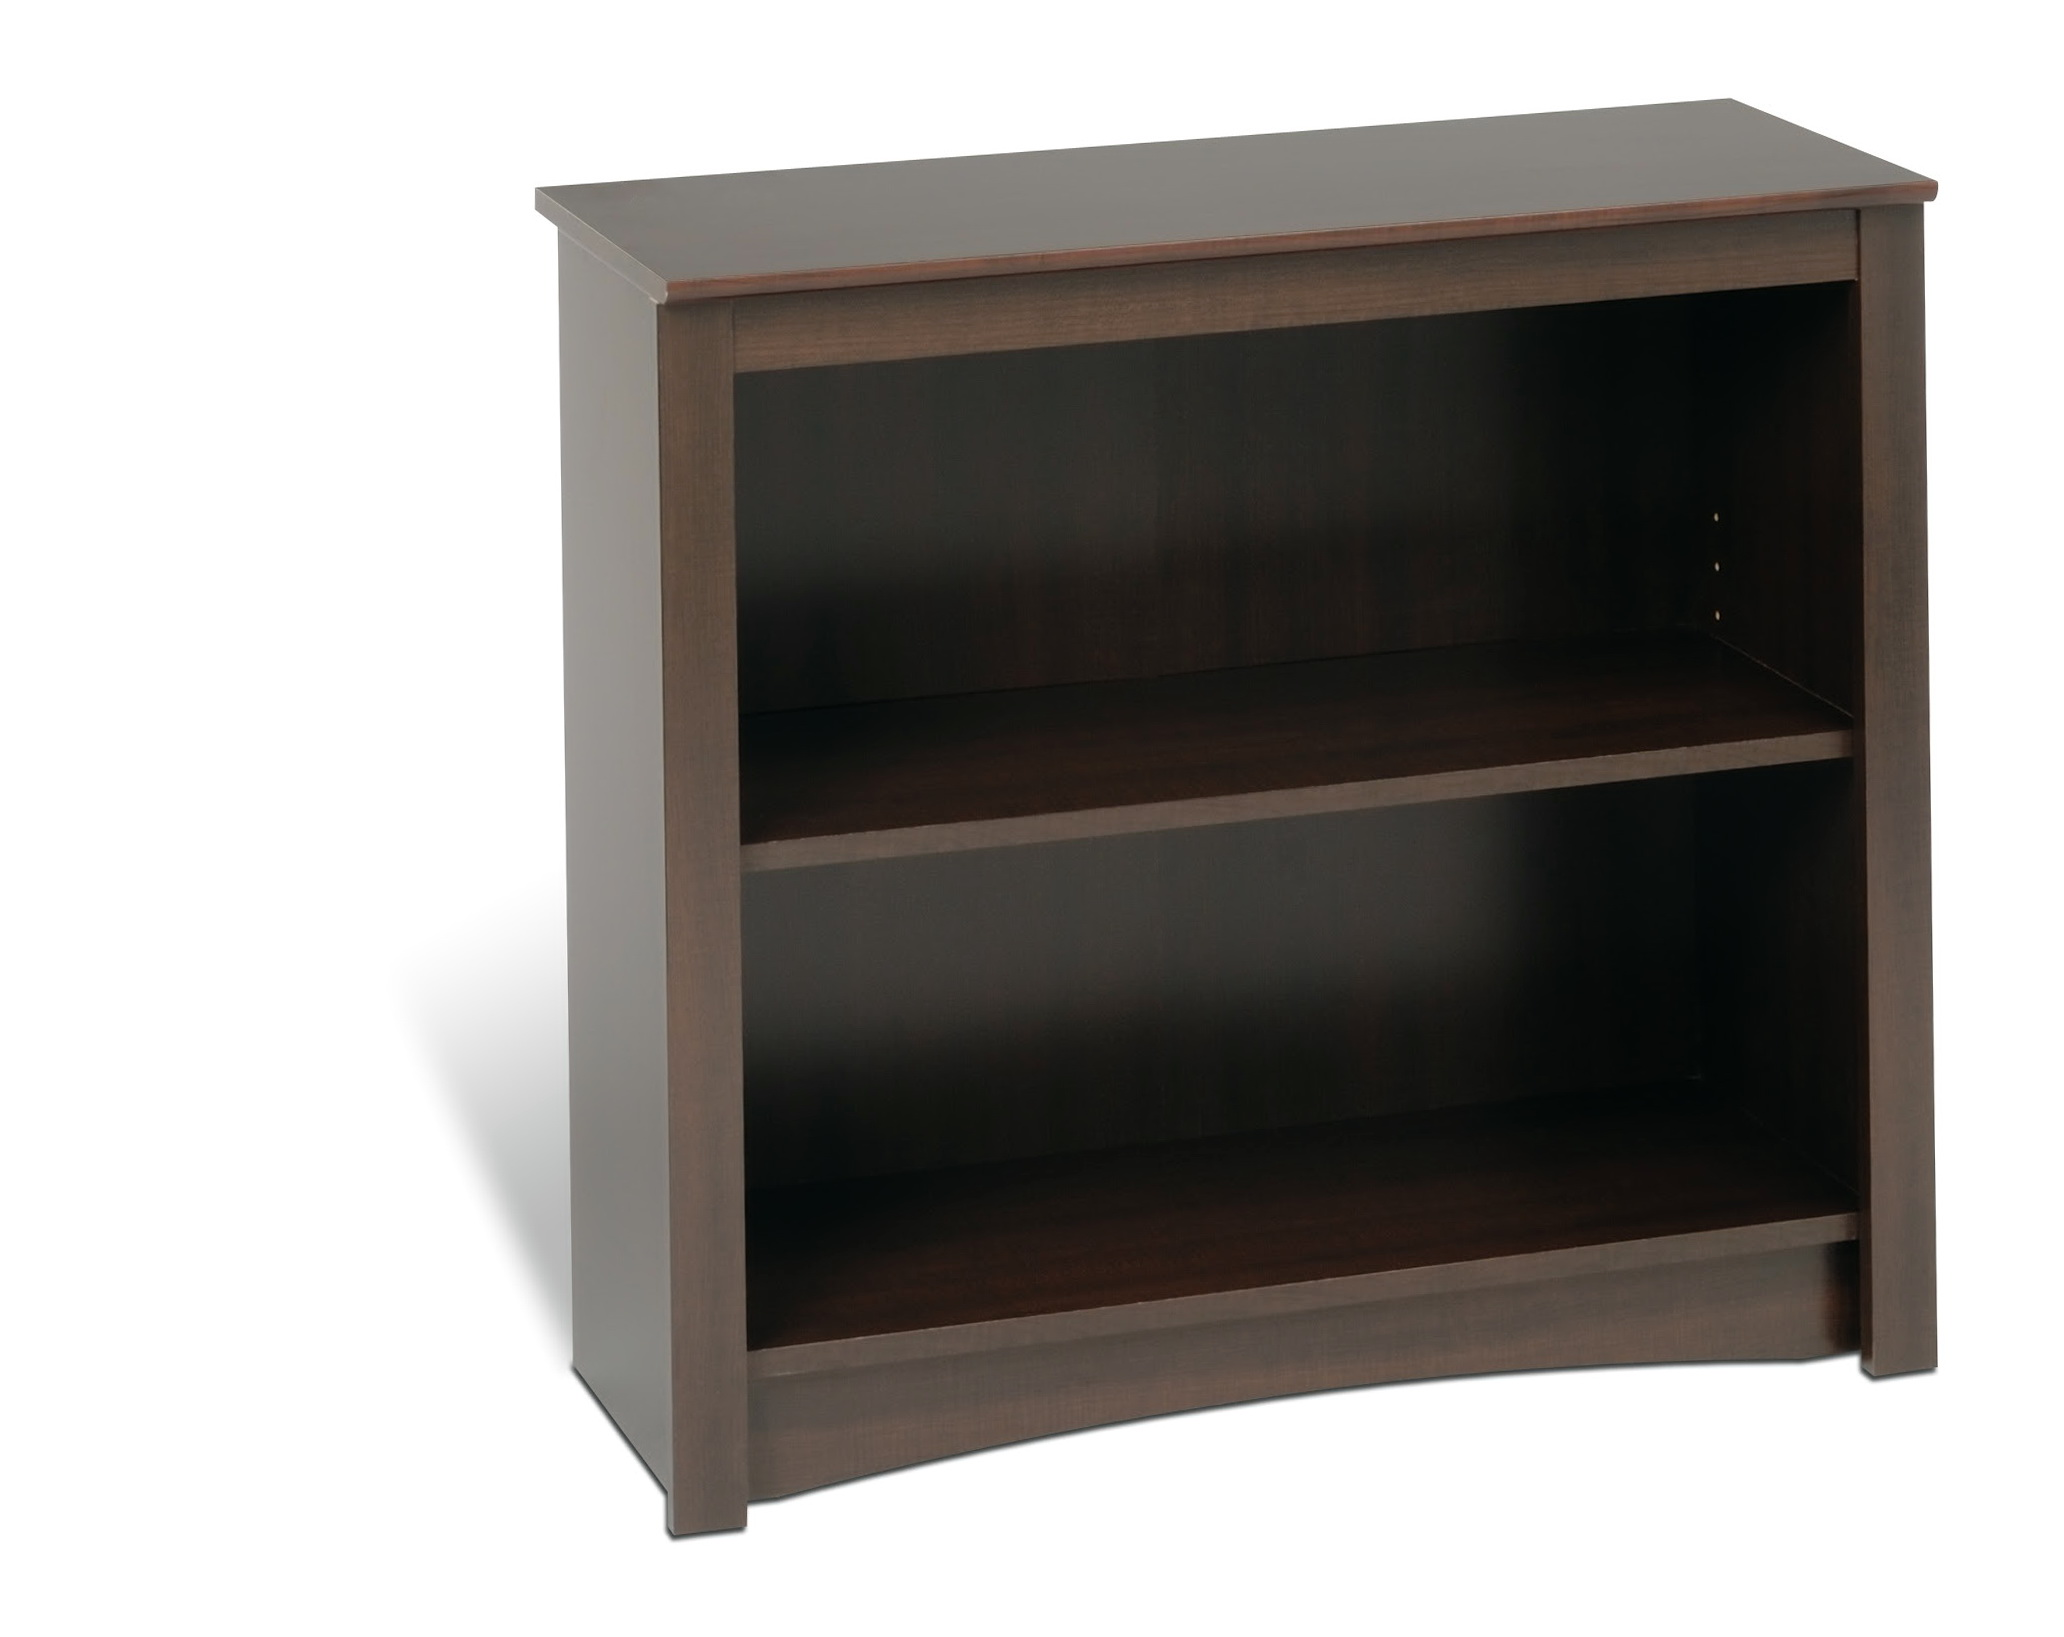 2 Shelf Bookcase Espresso